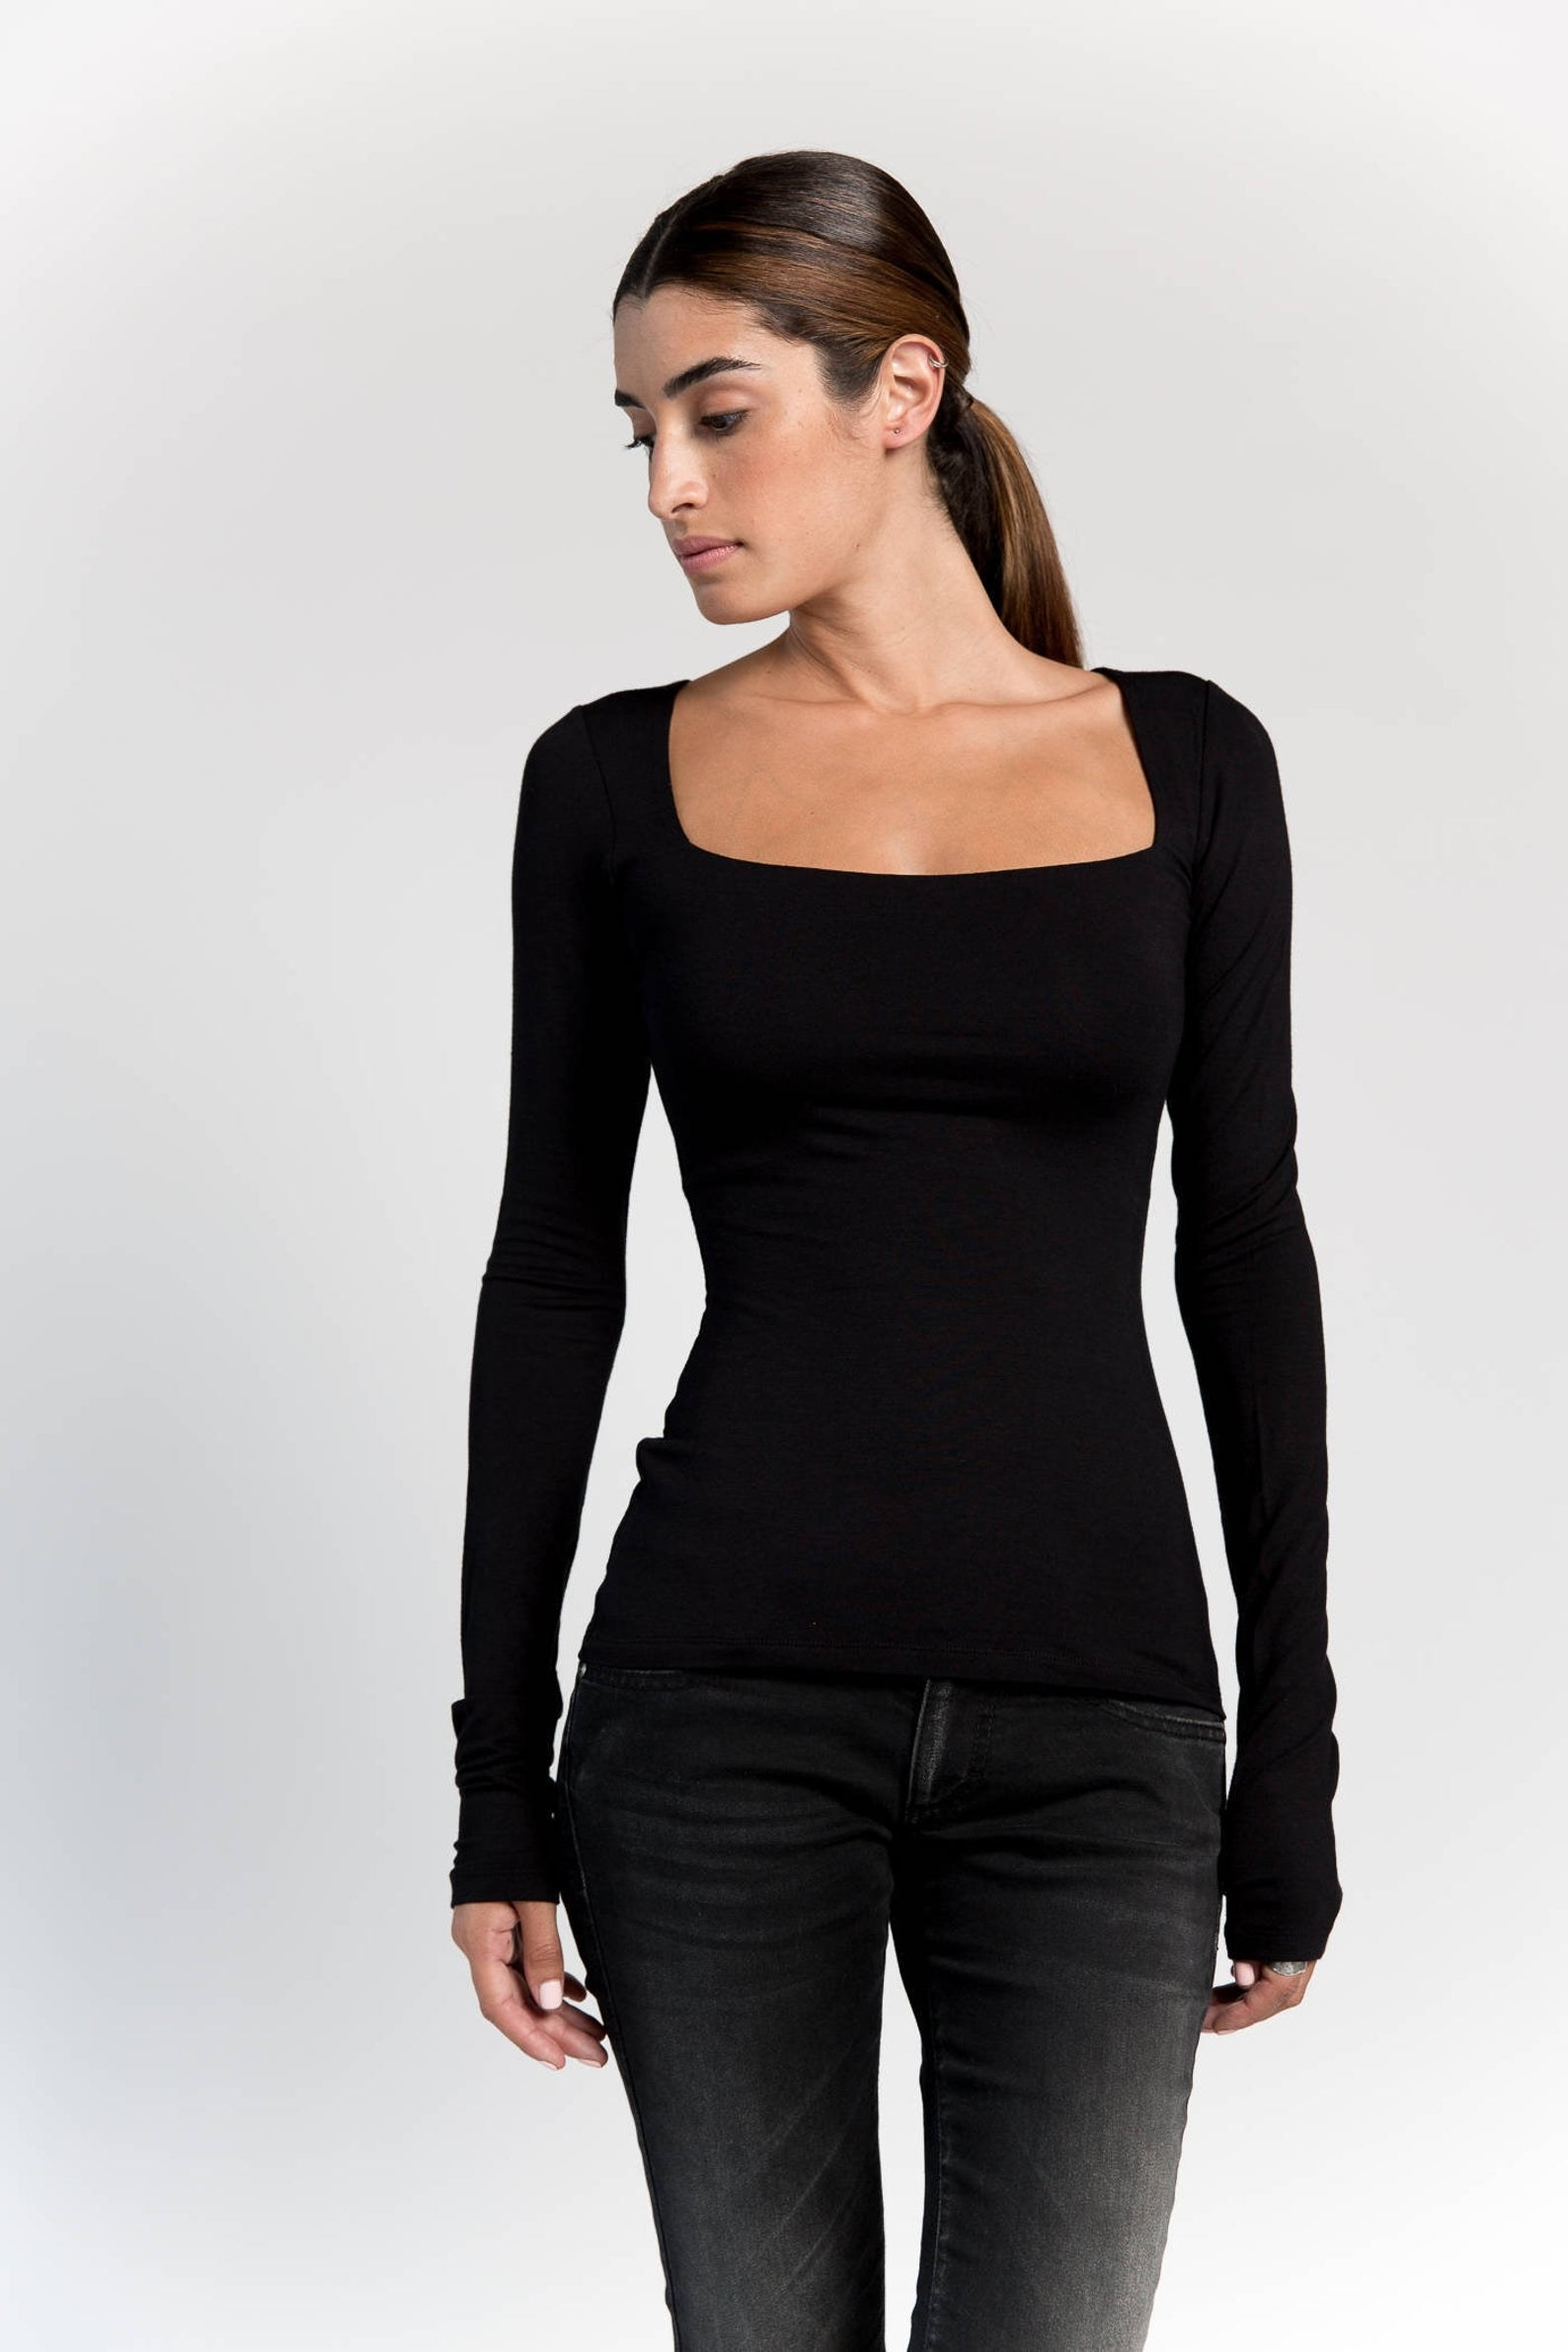 front view of a model wearing the top in black